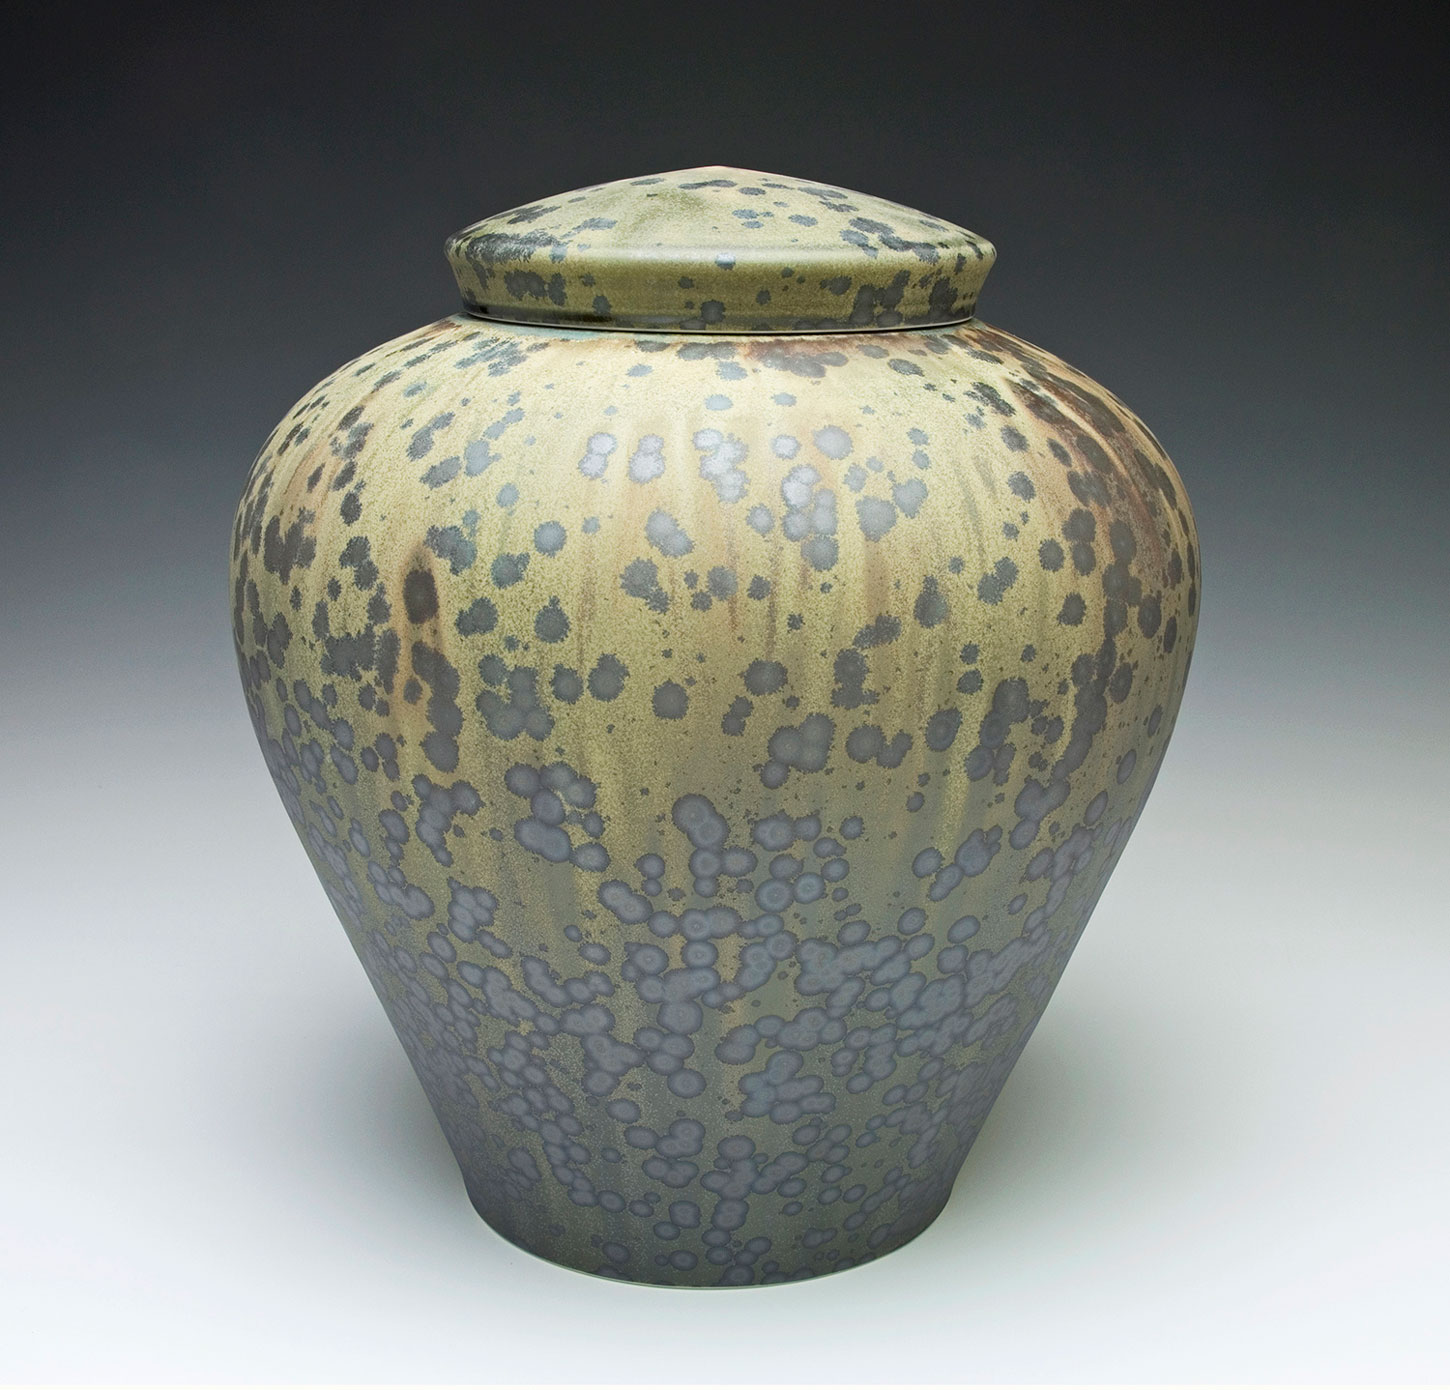 Crystalline-Glaze-Art-Pottery-Covered-Jar-Bruce-Gholson.jpg